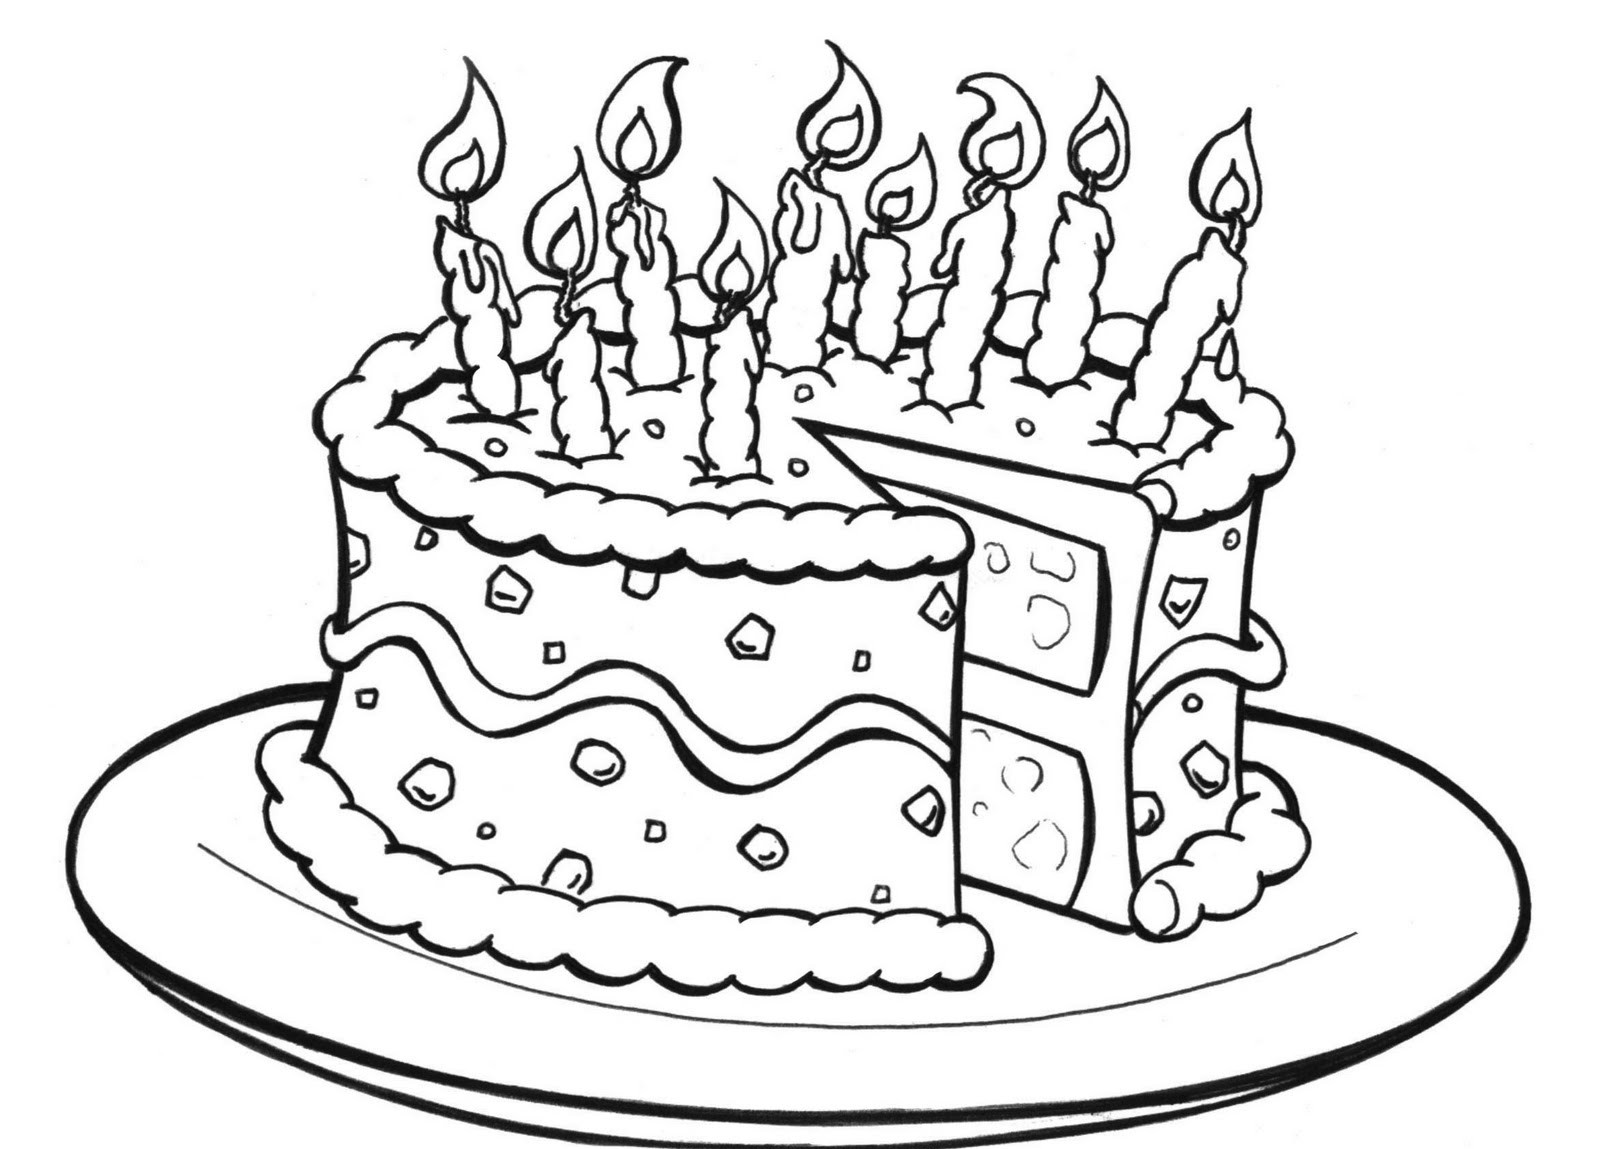 cake printables for coloring free printable birthday cake coloring pages for kids printables for cake coloring